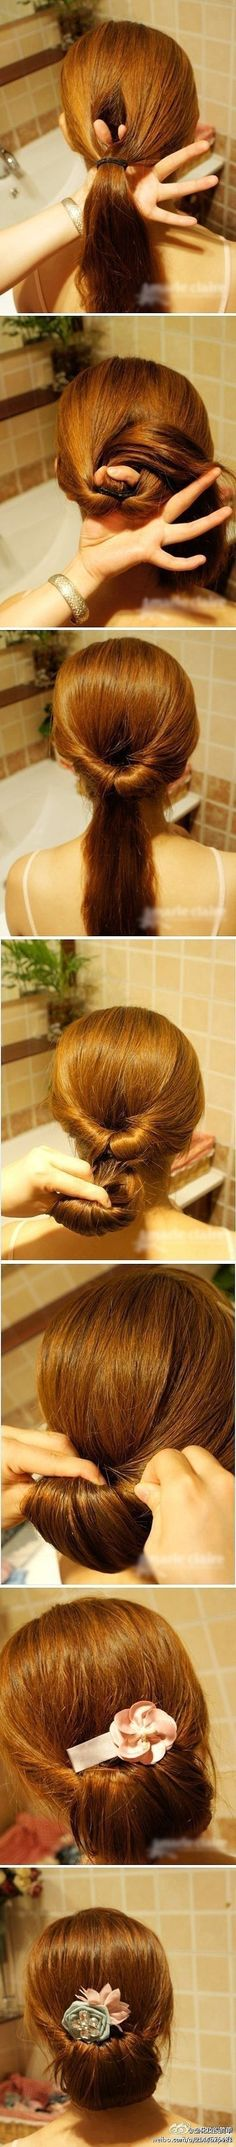 Can use fingers, no topsy tail needed to flip ponytail.